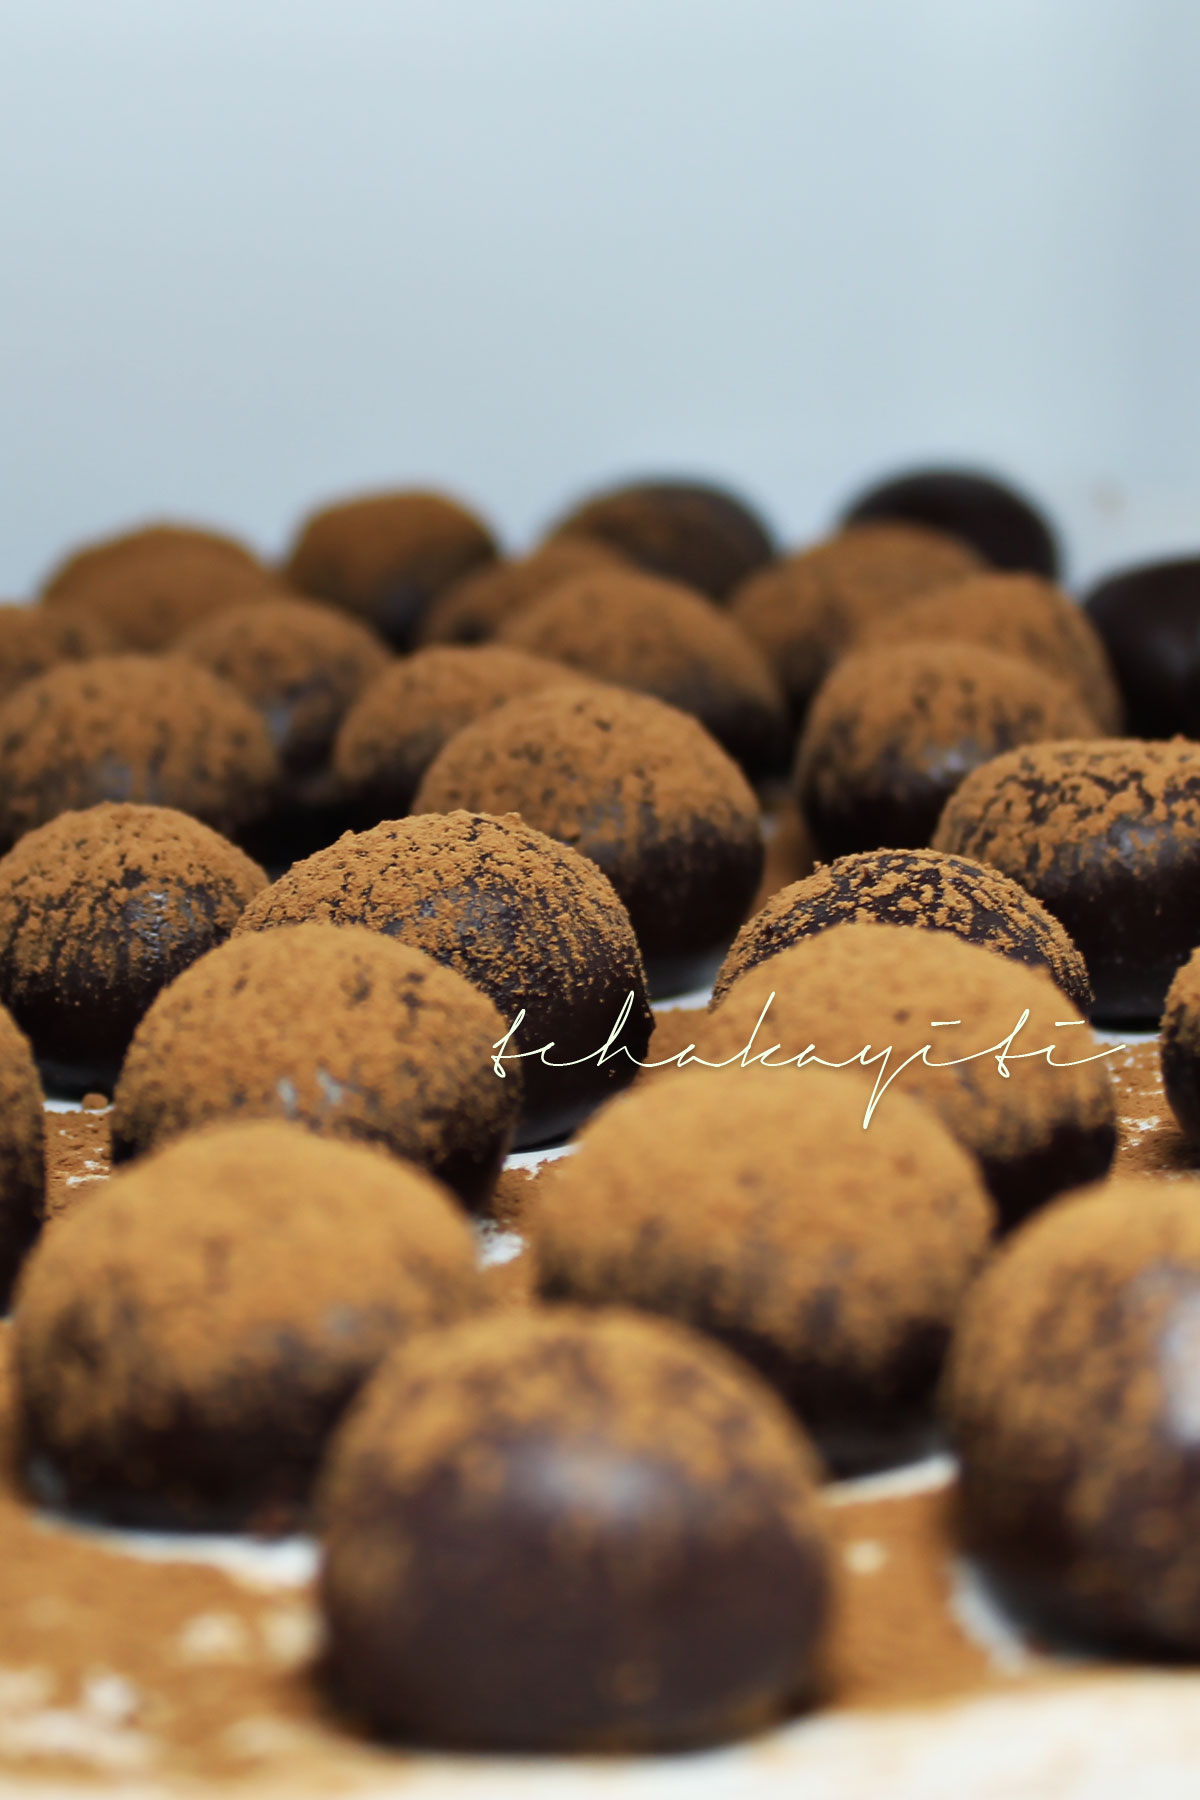 These boozy Haitian rum infused dark Haitian chocolate truffles will certainly leave you begging for more. | tchakayiti.com